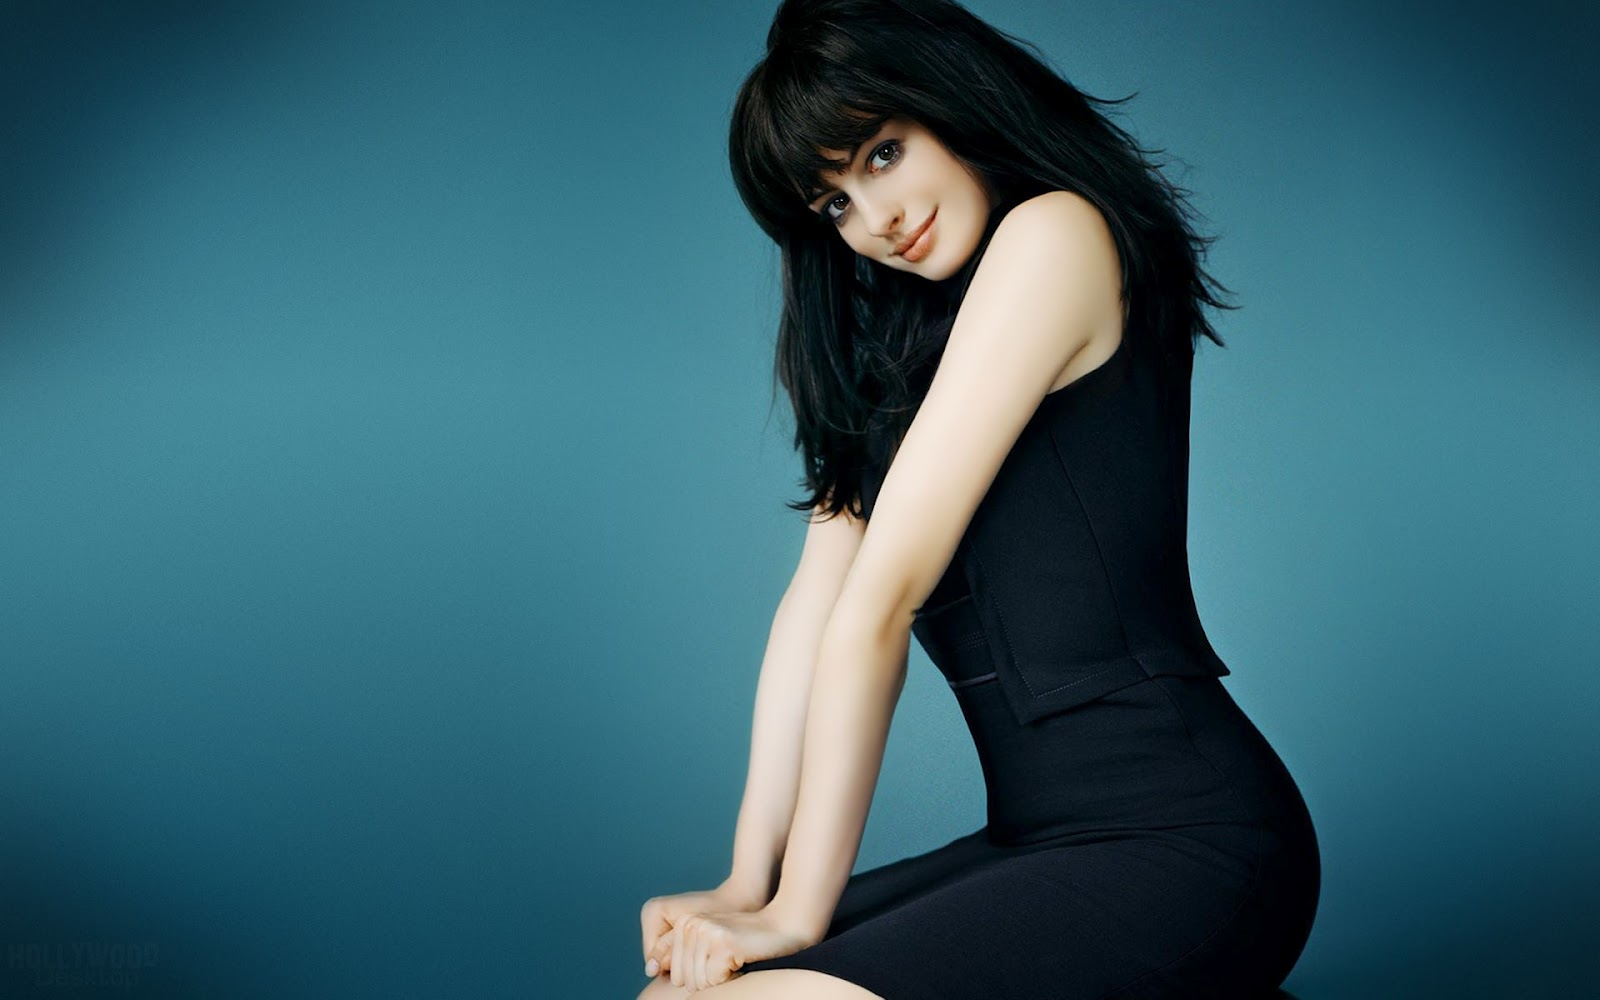 Hot Stars Celebrity Pictures: Anne Hathaway Hot